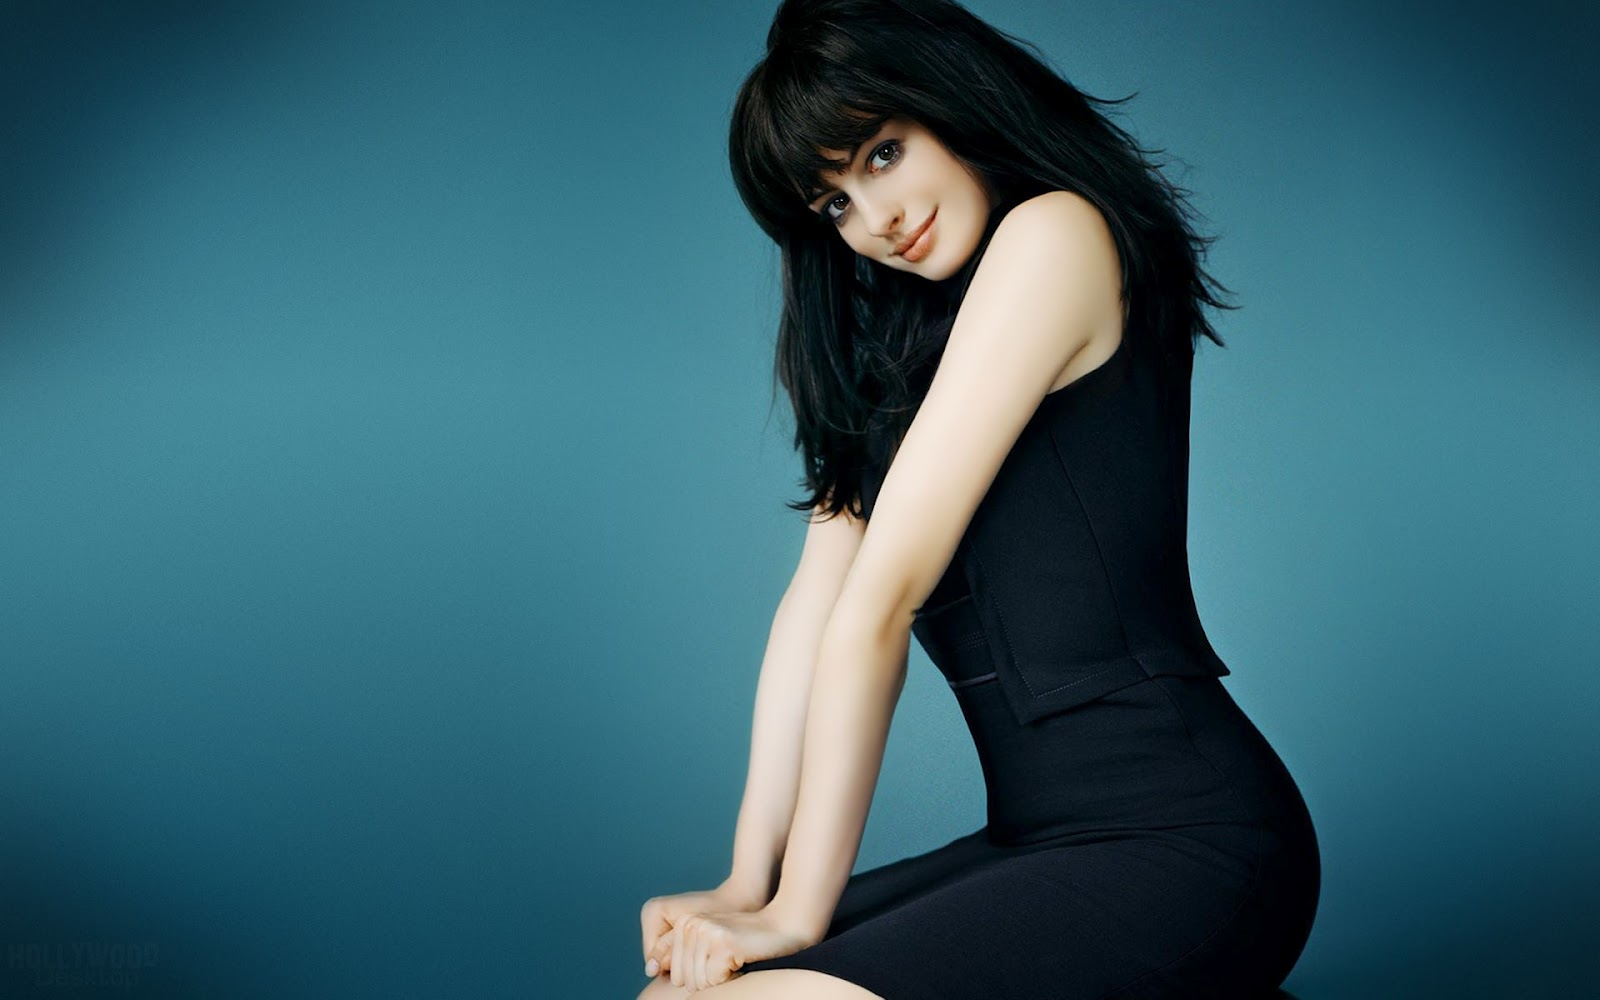 Hot Stars Celebrity Pictures: Anne Hathaway Hot